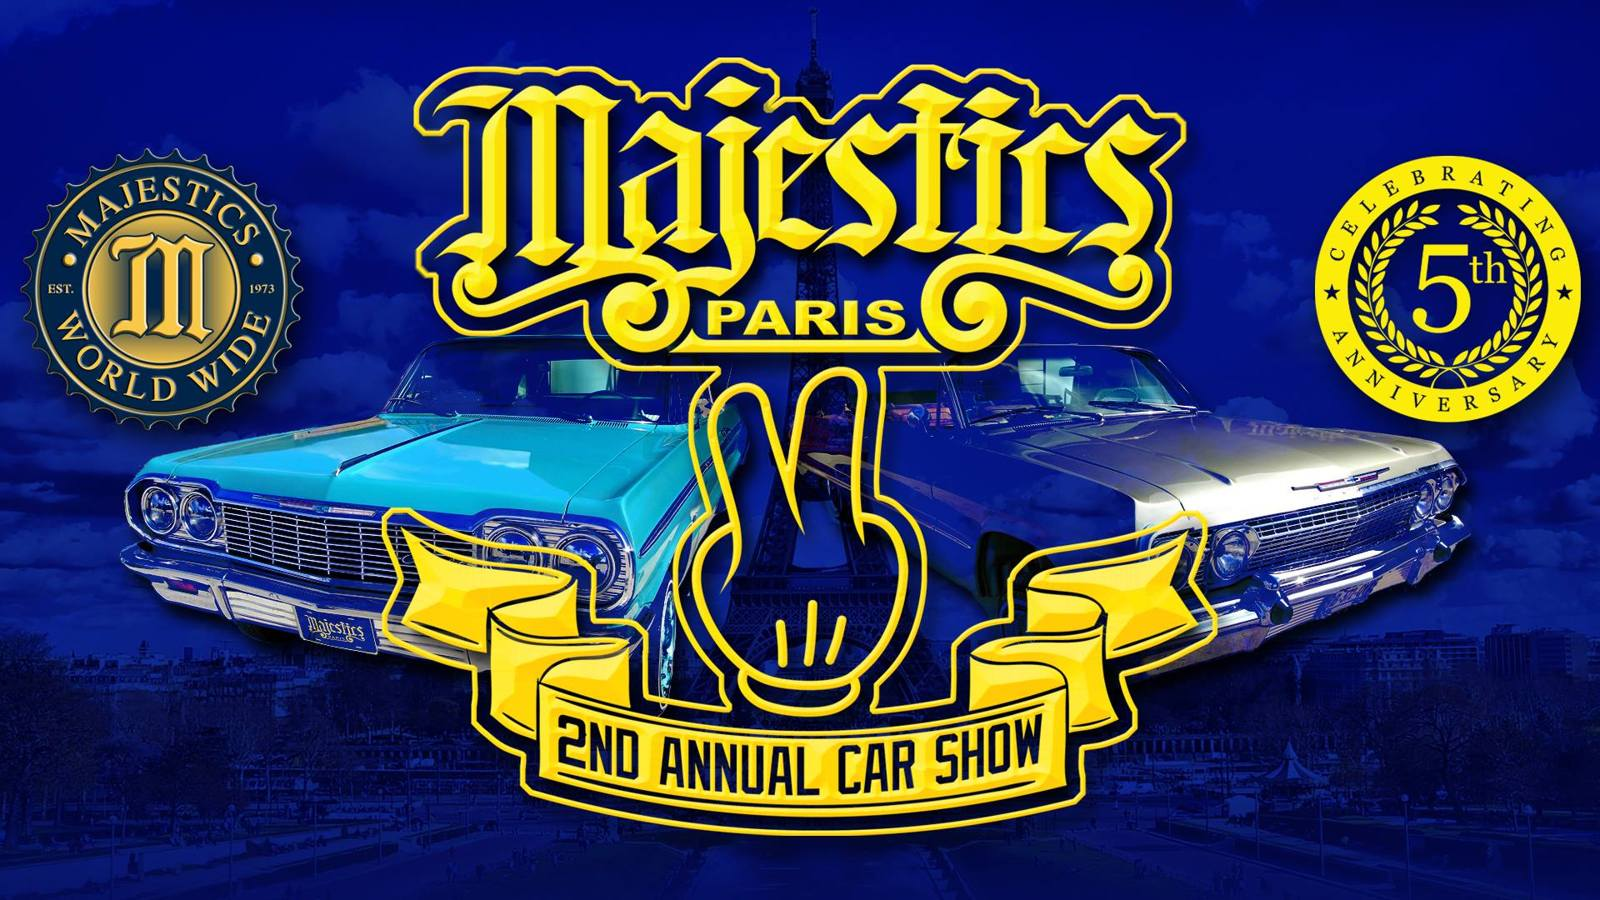 Majestics Paris 2nd Annual Car Show